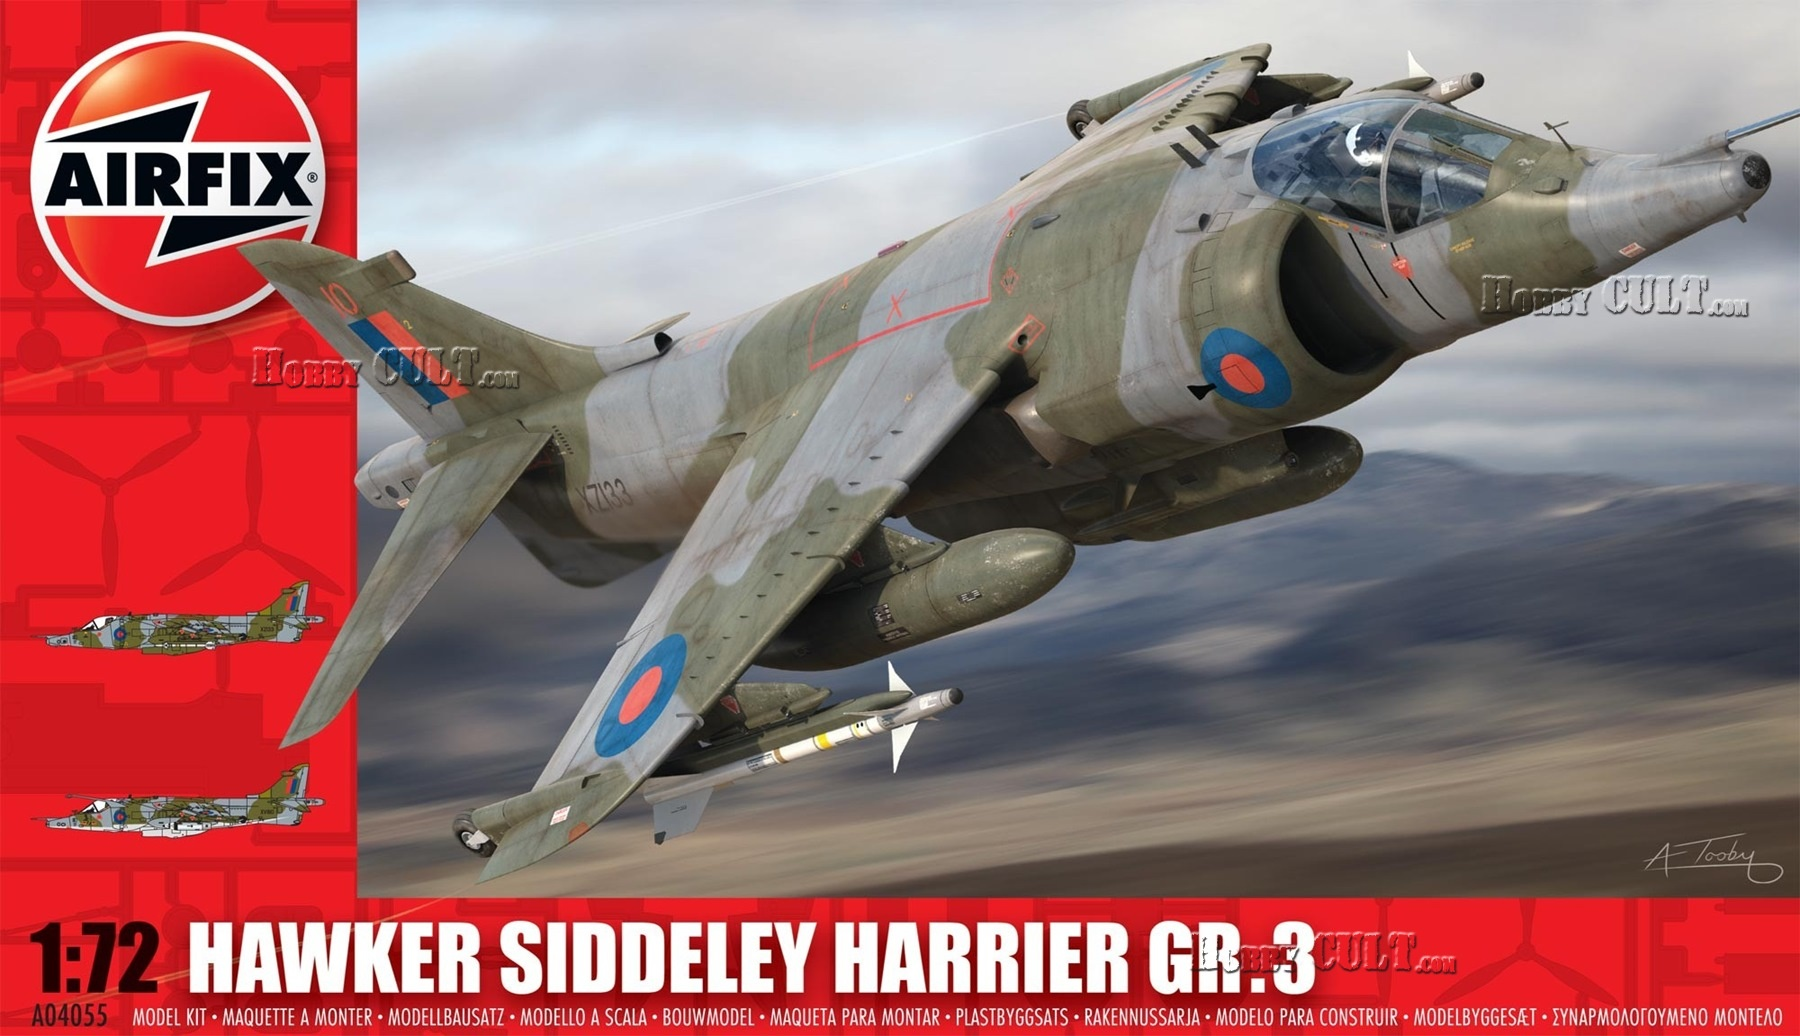 1:72 Hawker Siddeley Harrier GR.3